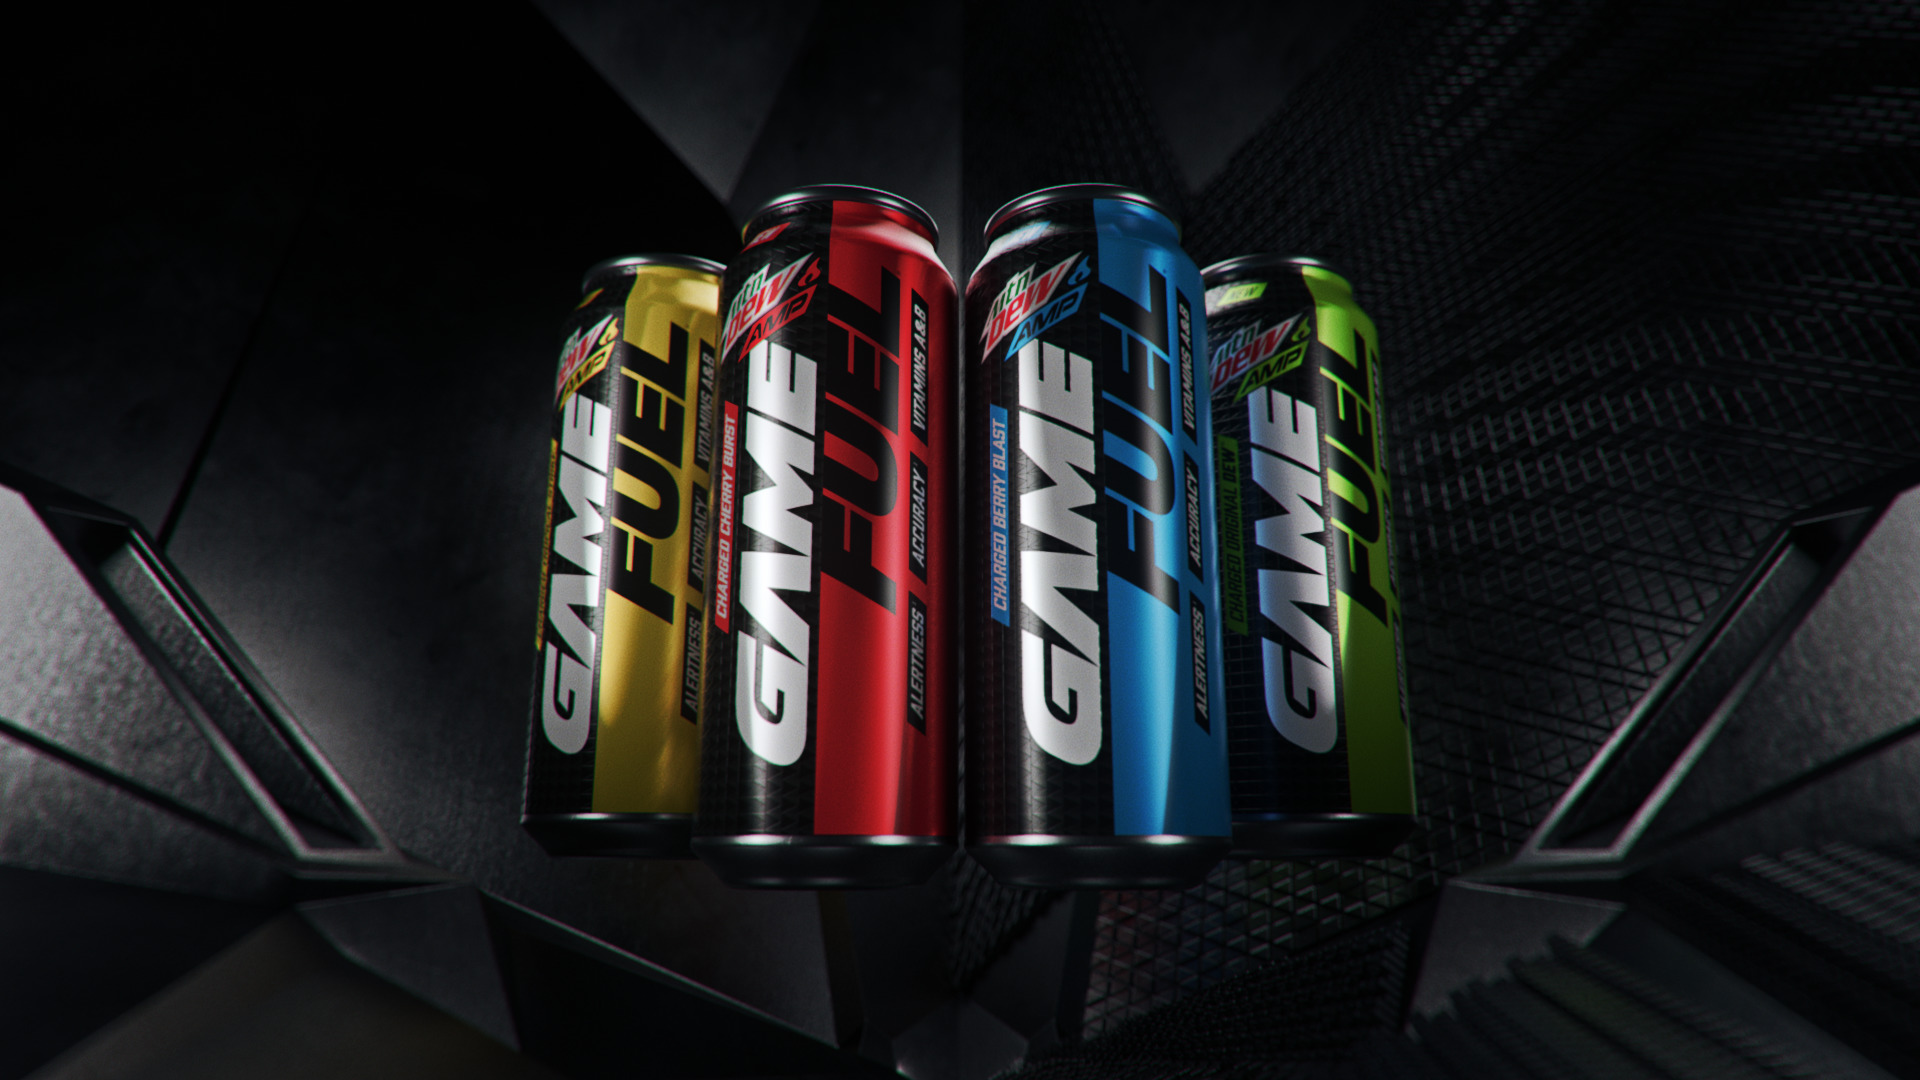 Mtn Dew Amp Game Fuel is terribly designed, leaving me sticky and sad screenshot